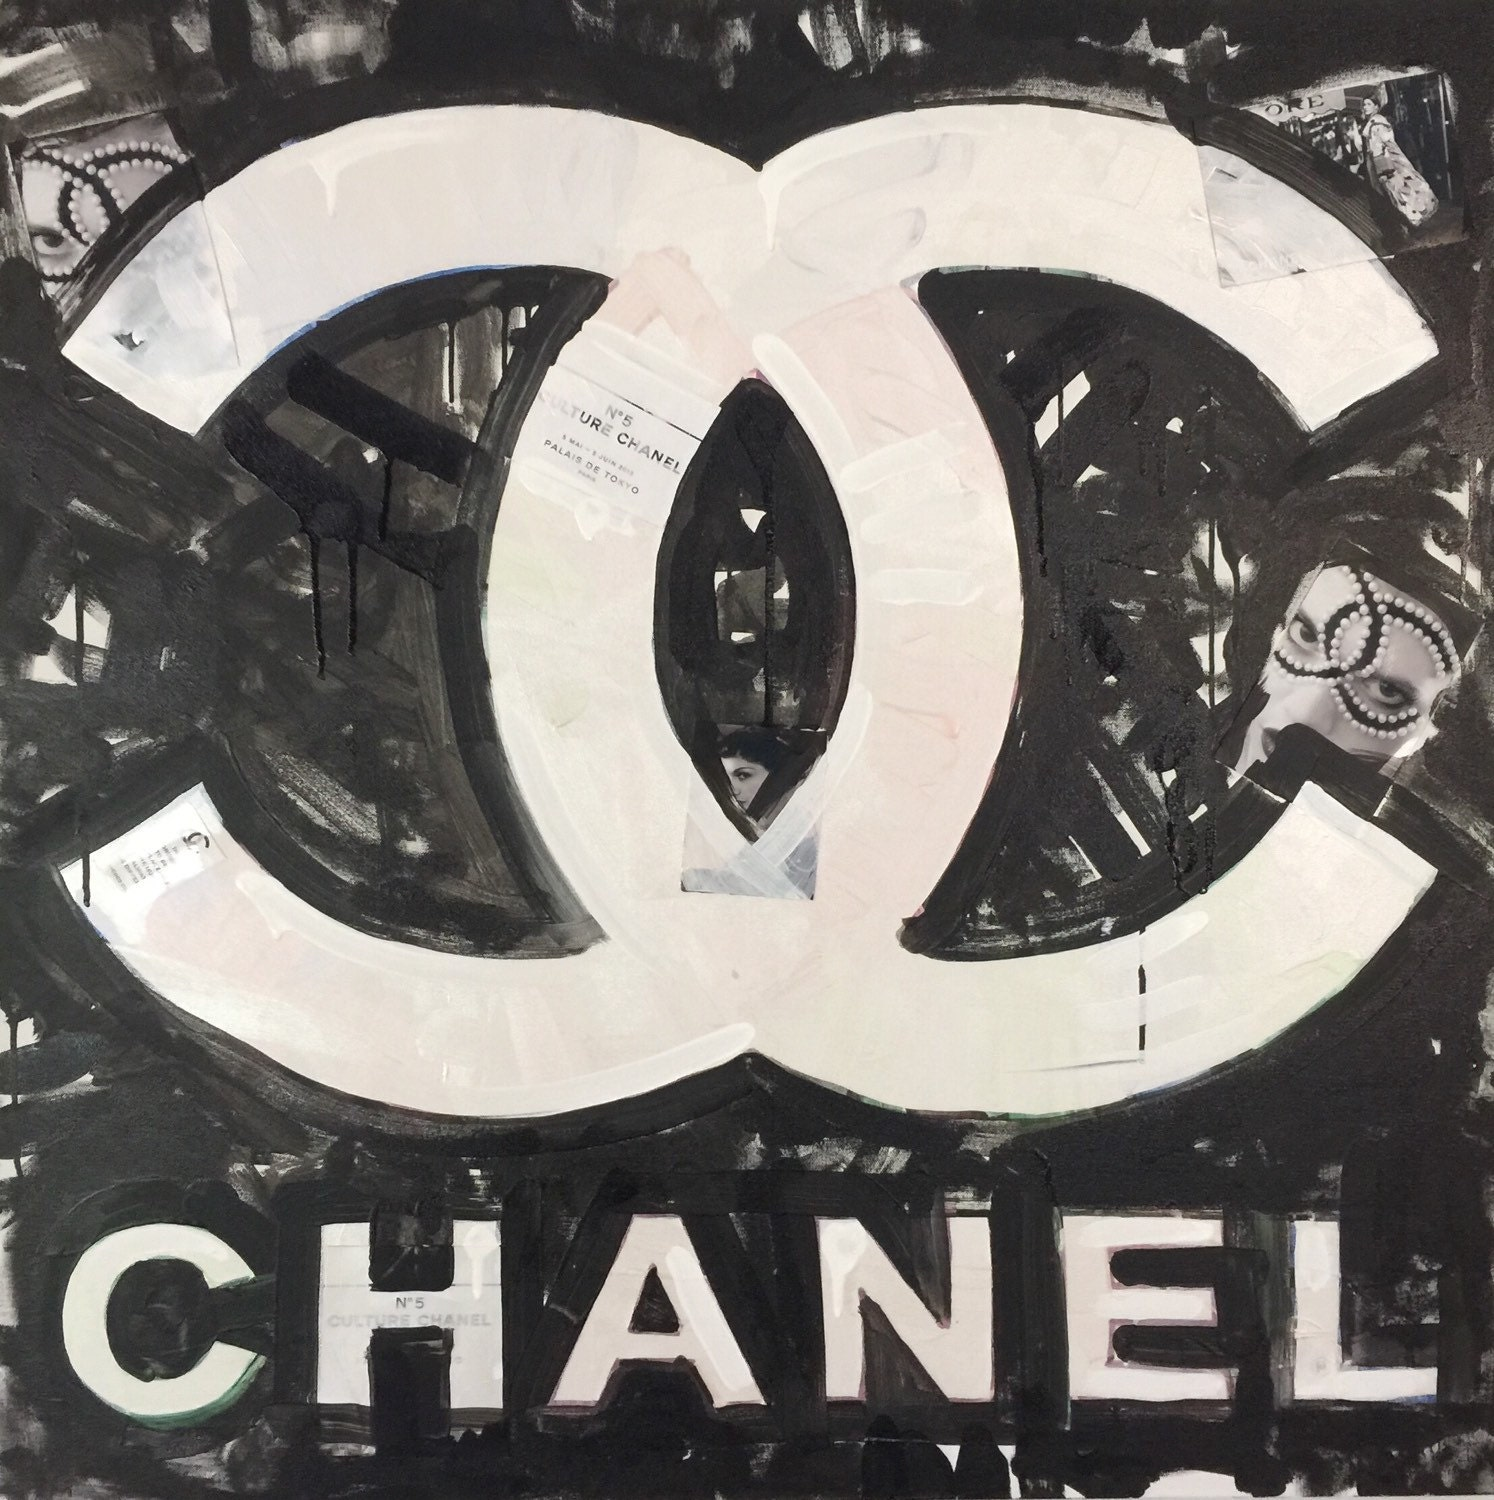 chanel art coco chanel logo by matt pecson pop art painting. Black Bedroom Furniture Sets. Home Design Ideas